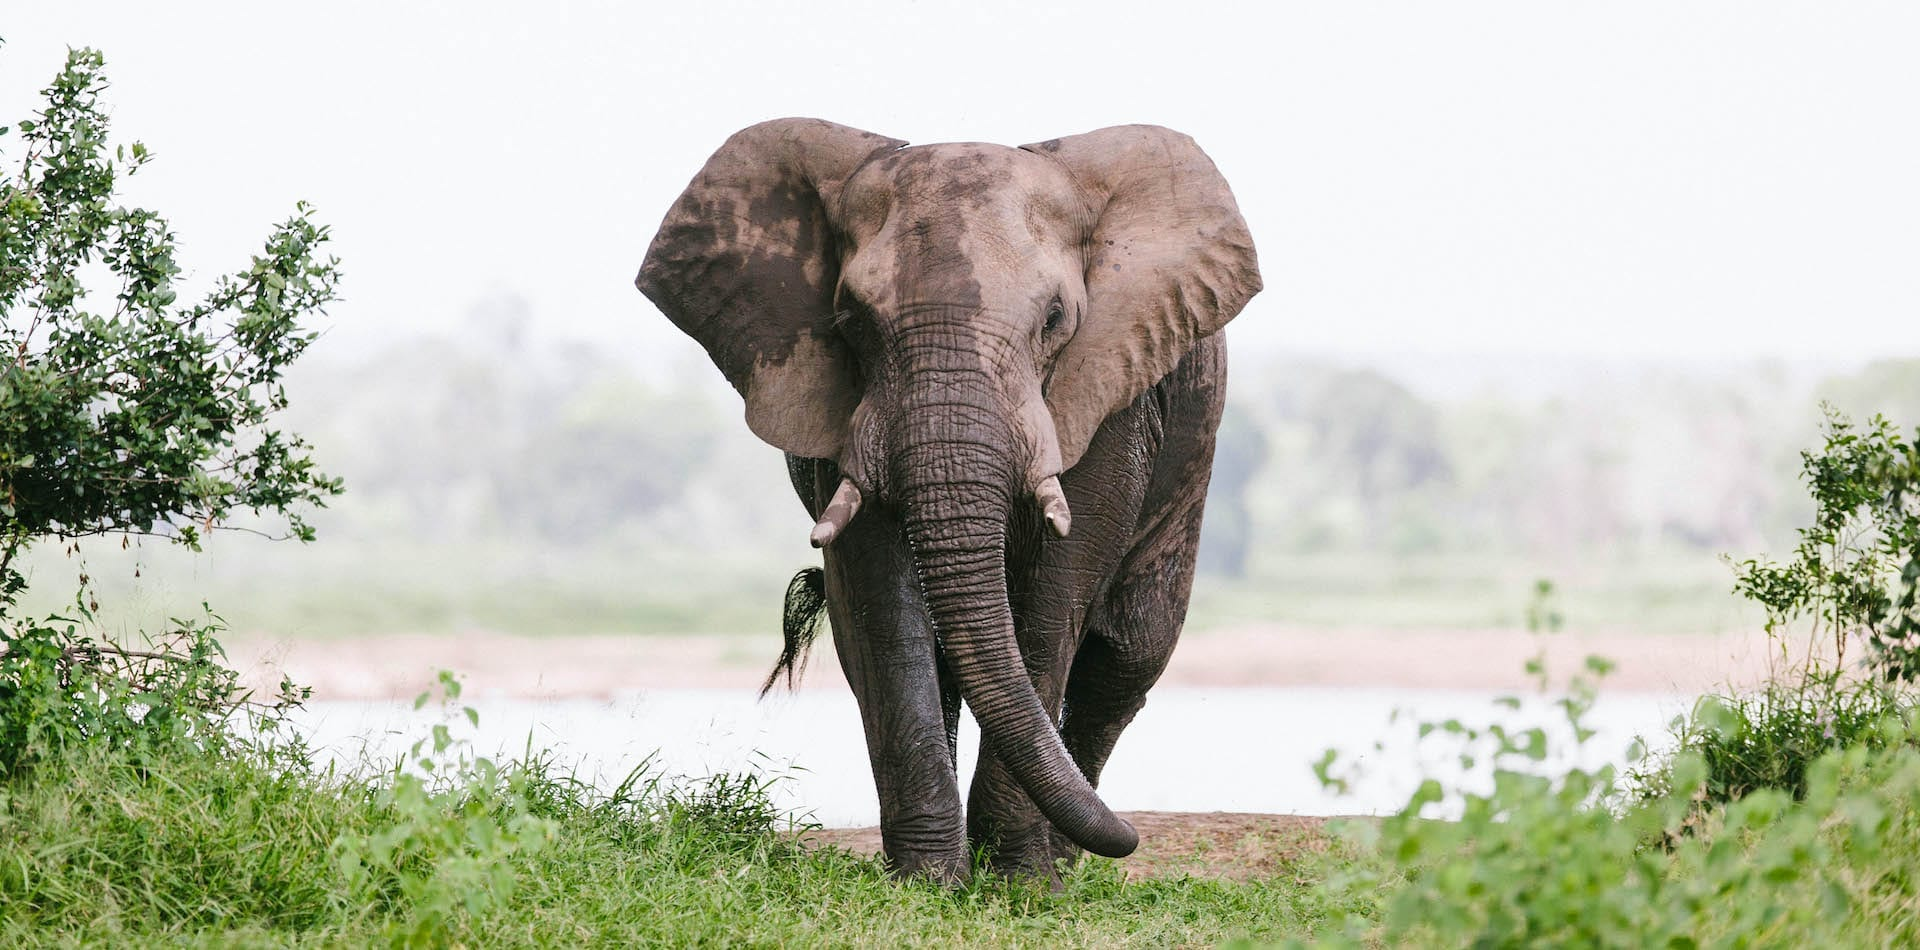 Intimate image of an elephant emerging from the water